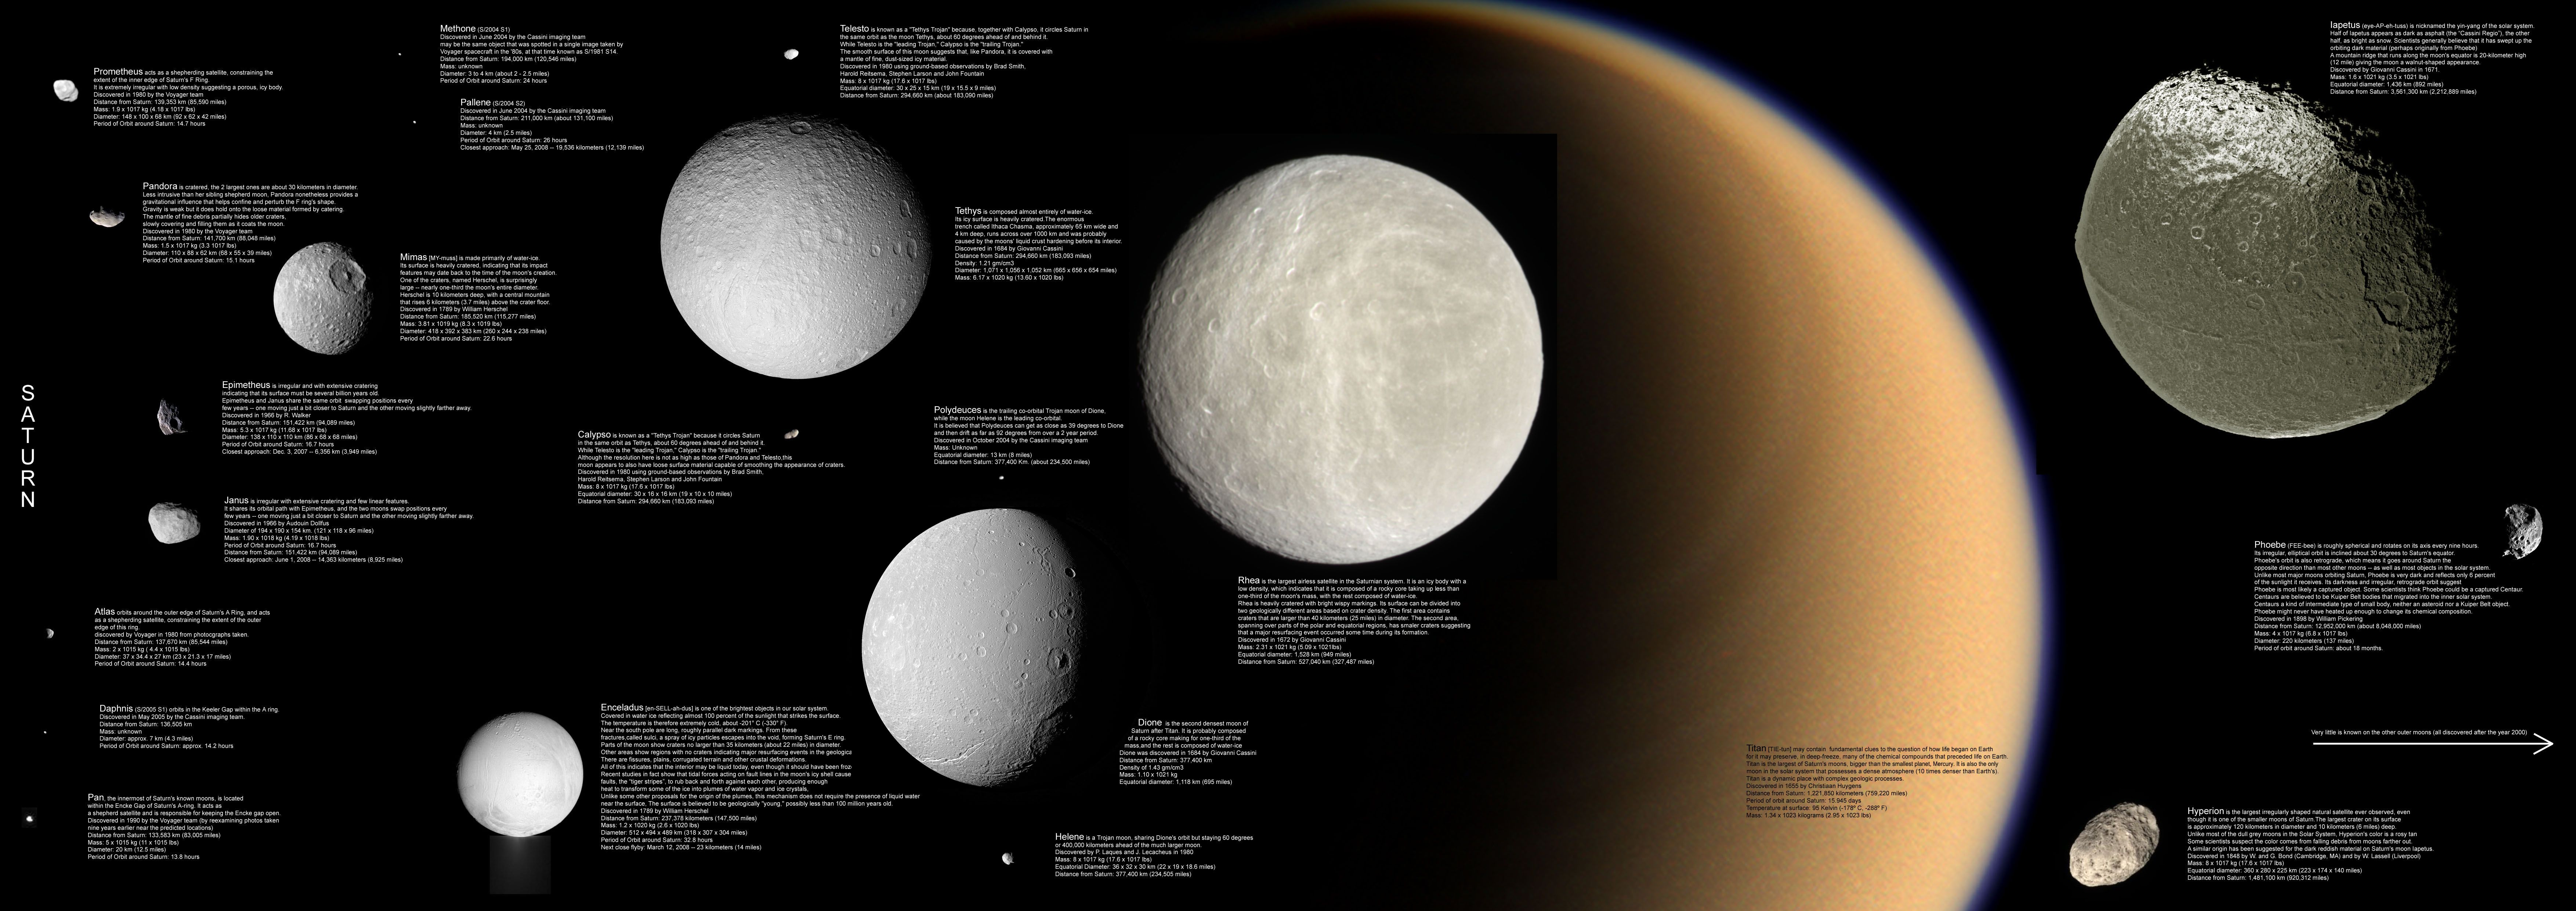 Moons Of Saturn 2007 Infographic Abyss Uoregon Edu Saturns